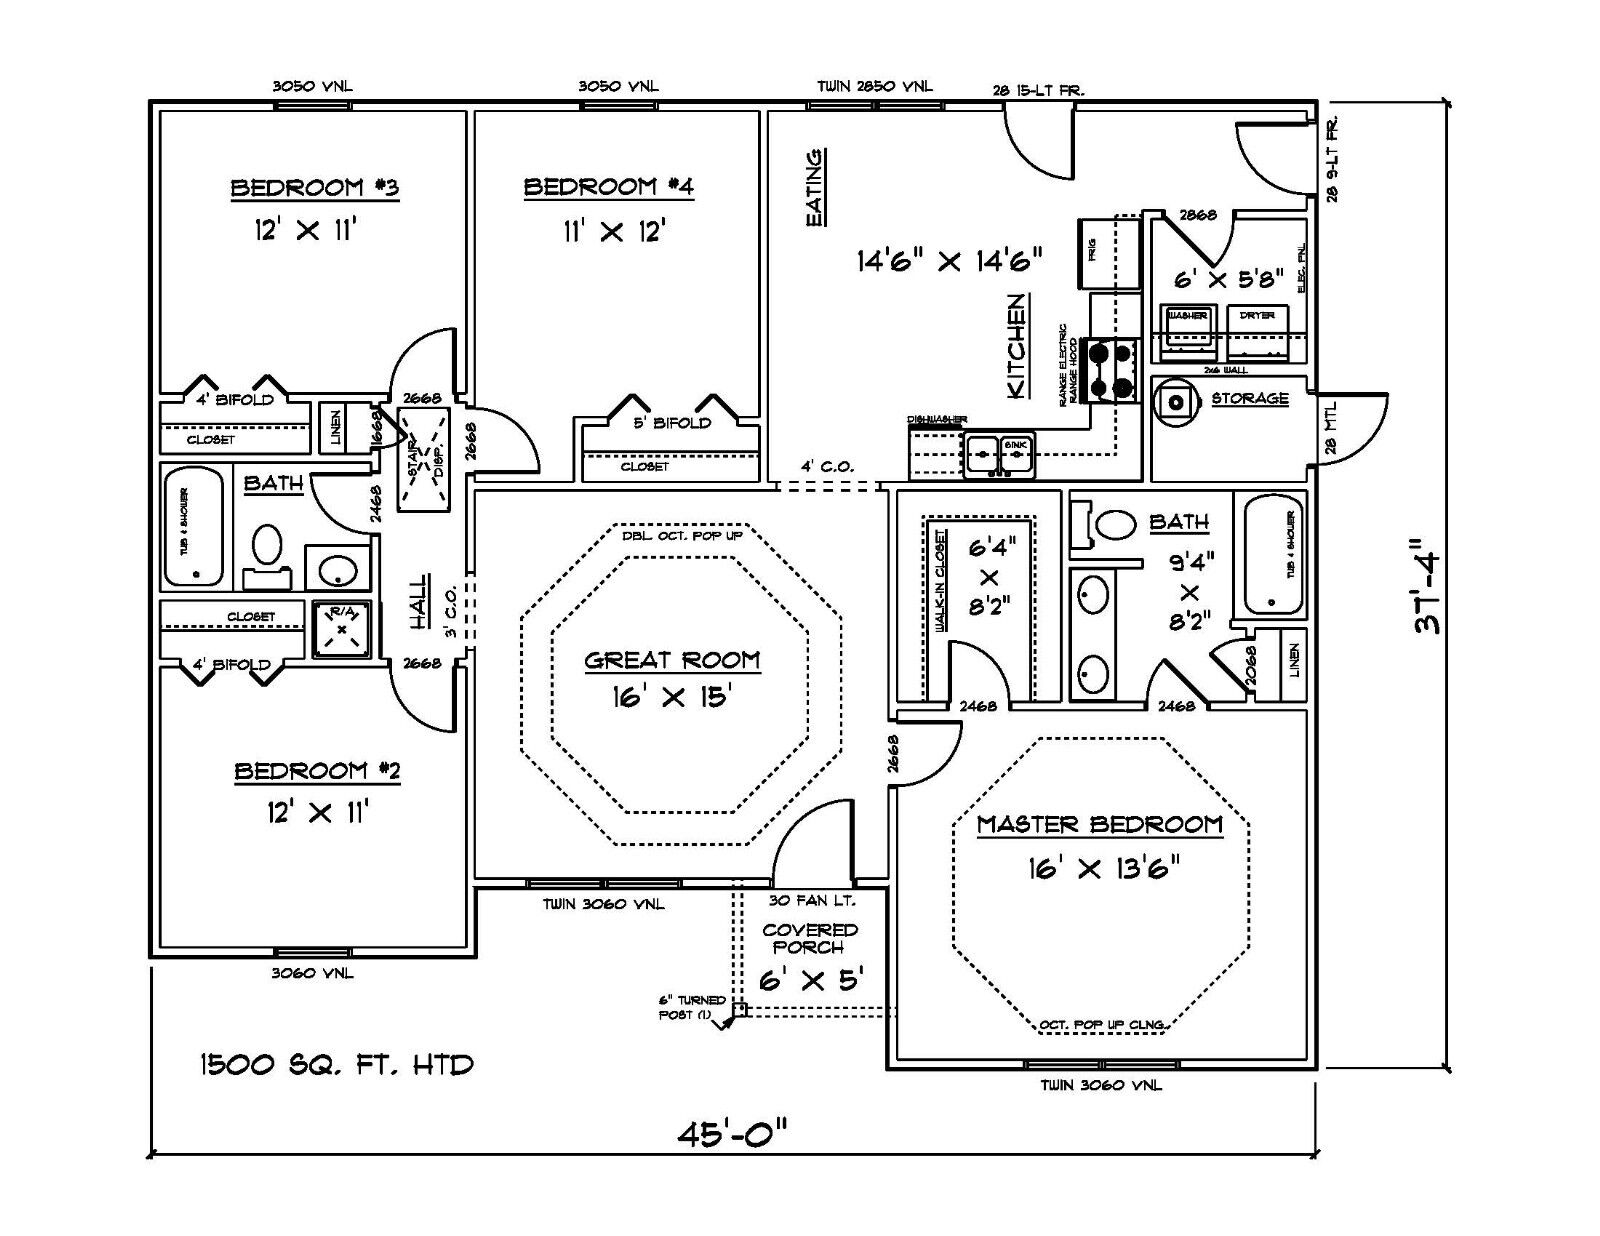 house plans for 1500 sq  ft  4 bedroom house